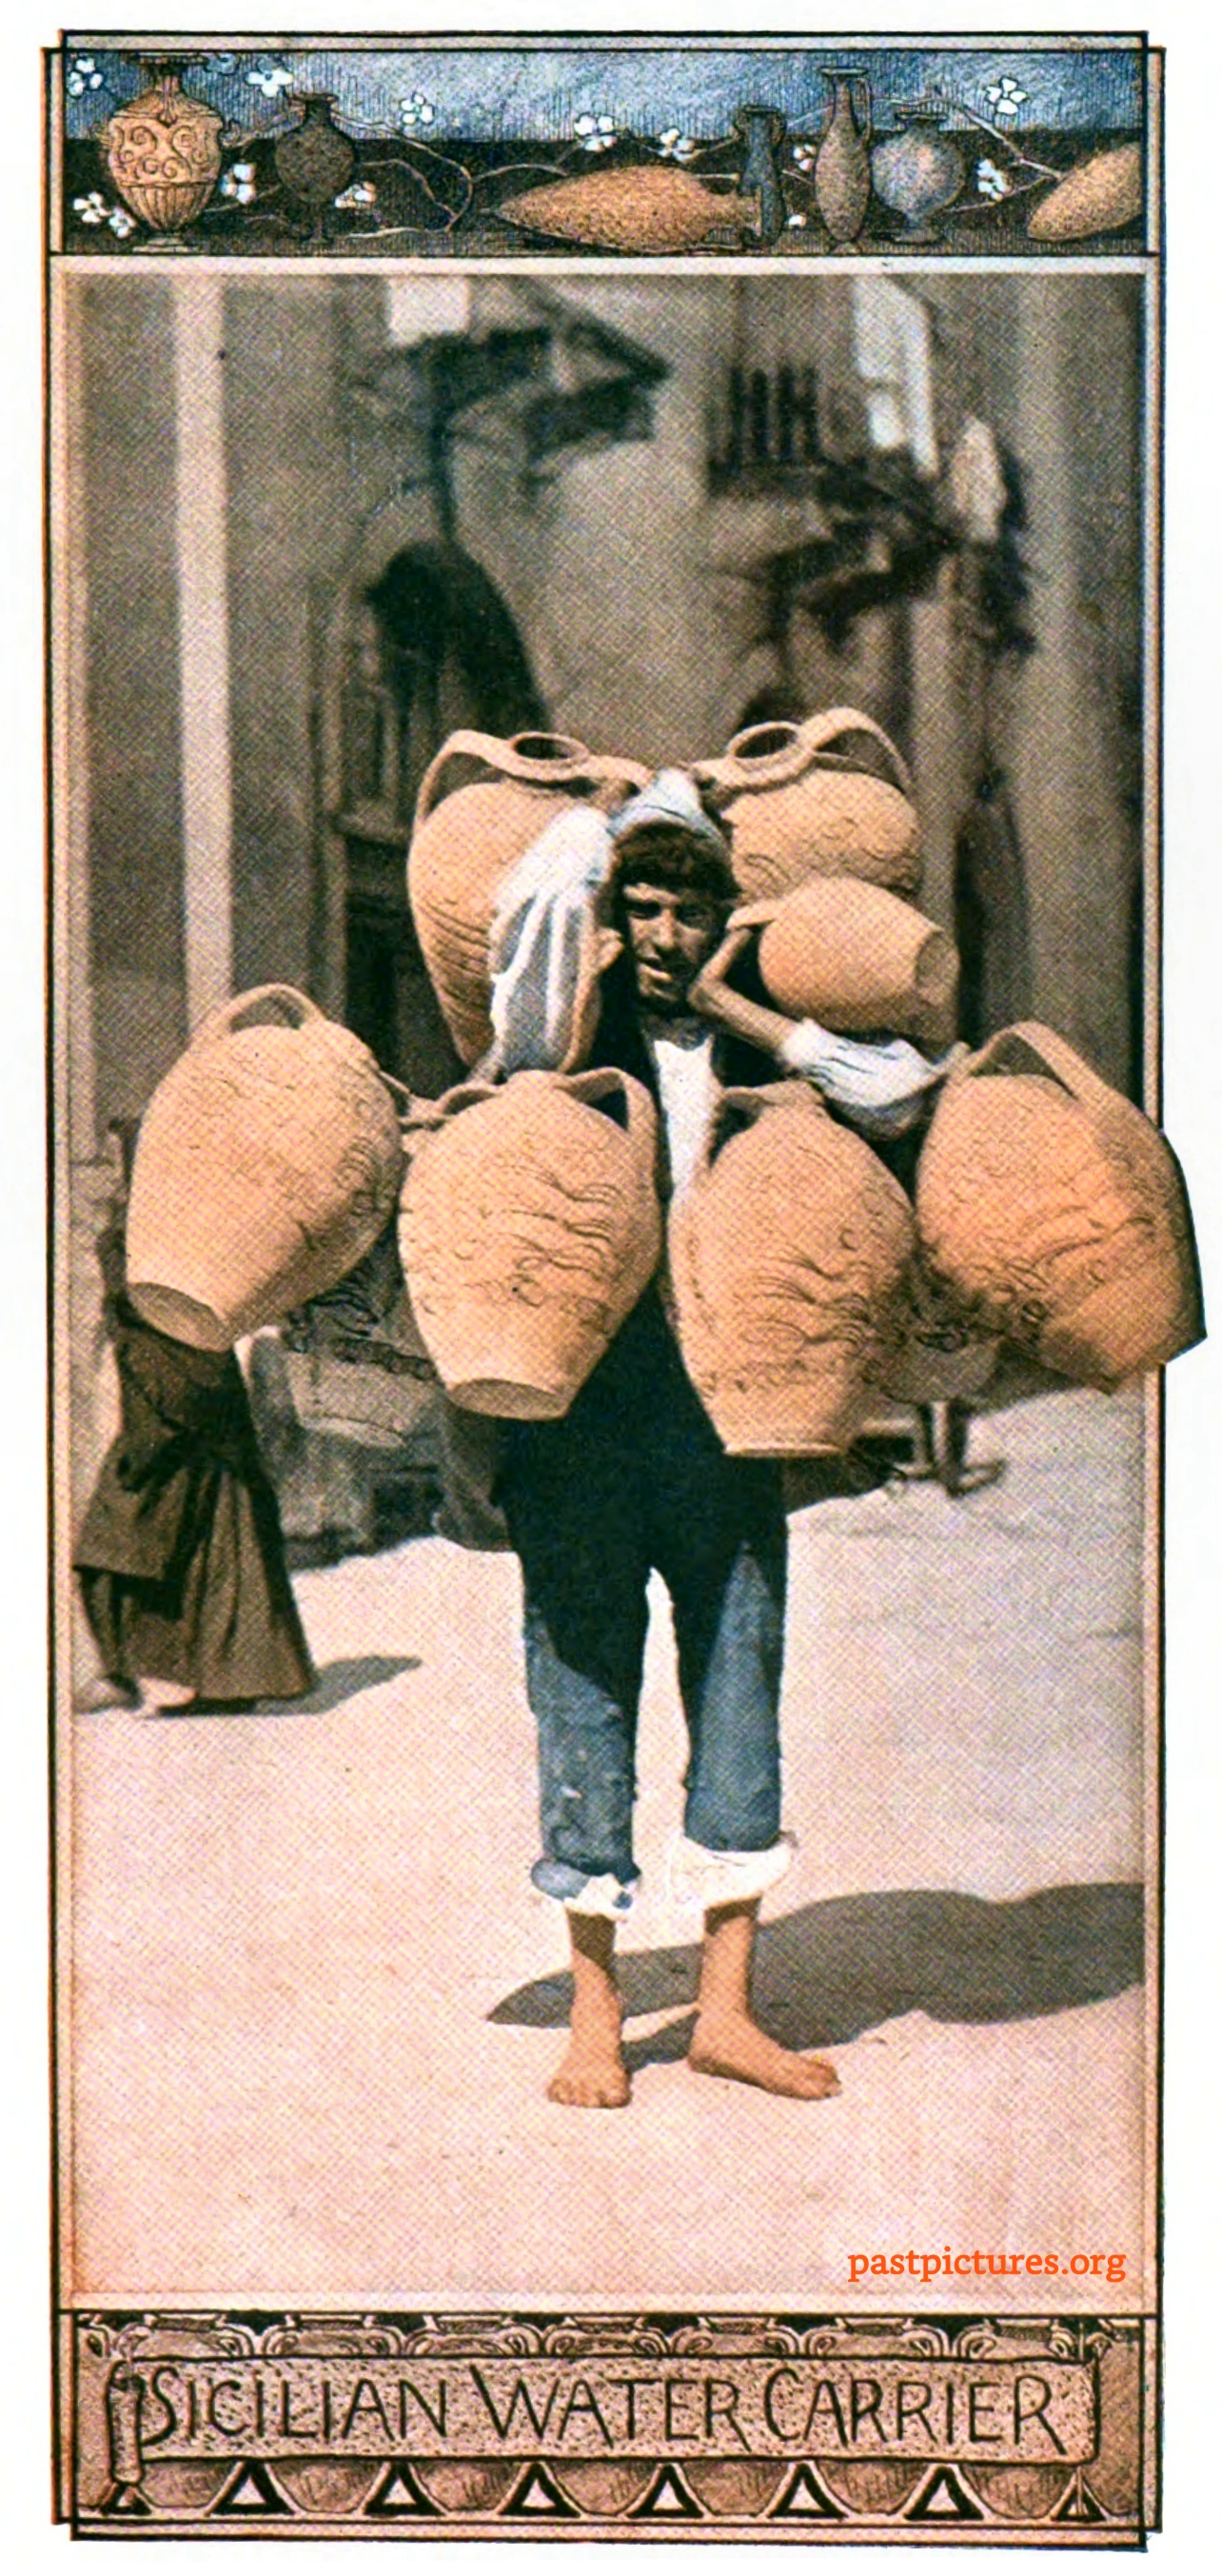 Sicilian Water Carrier about 1905